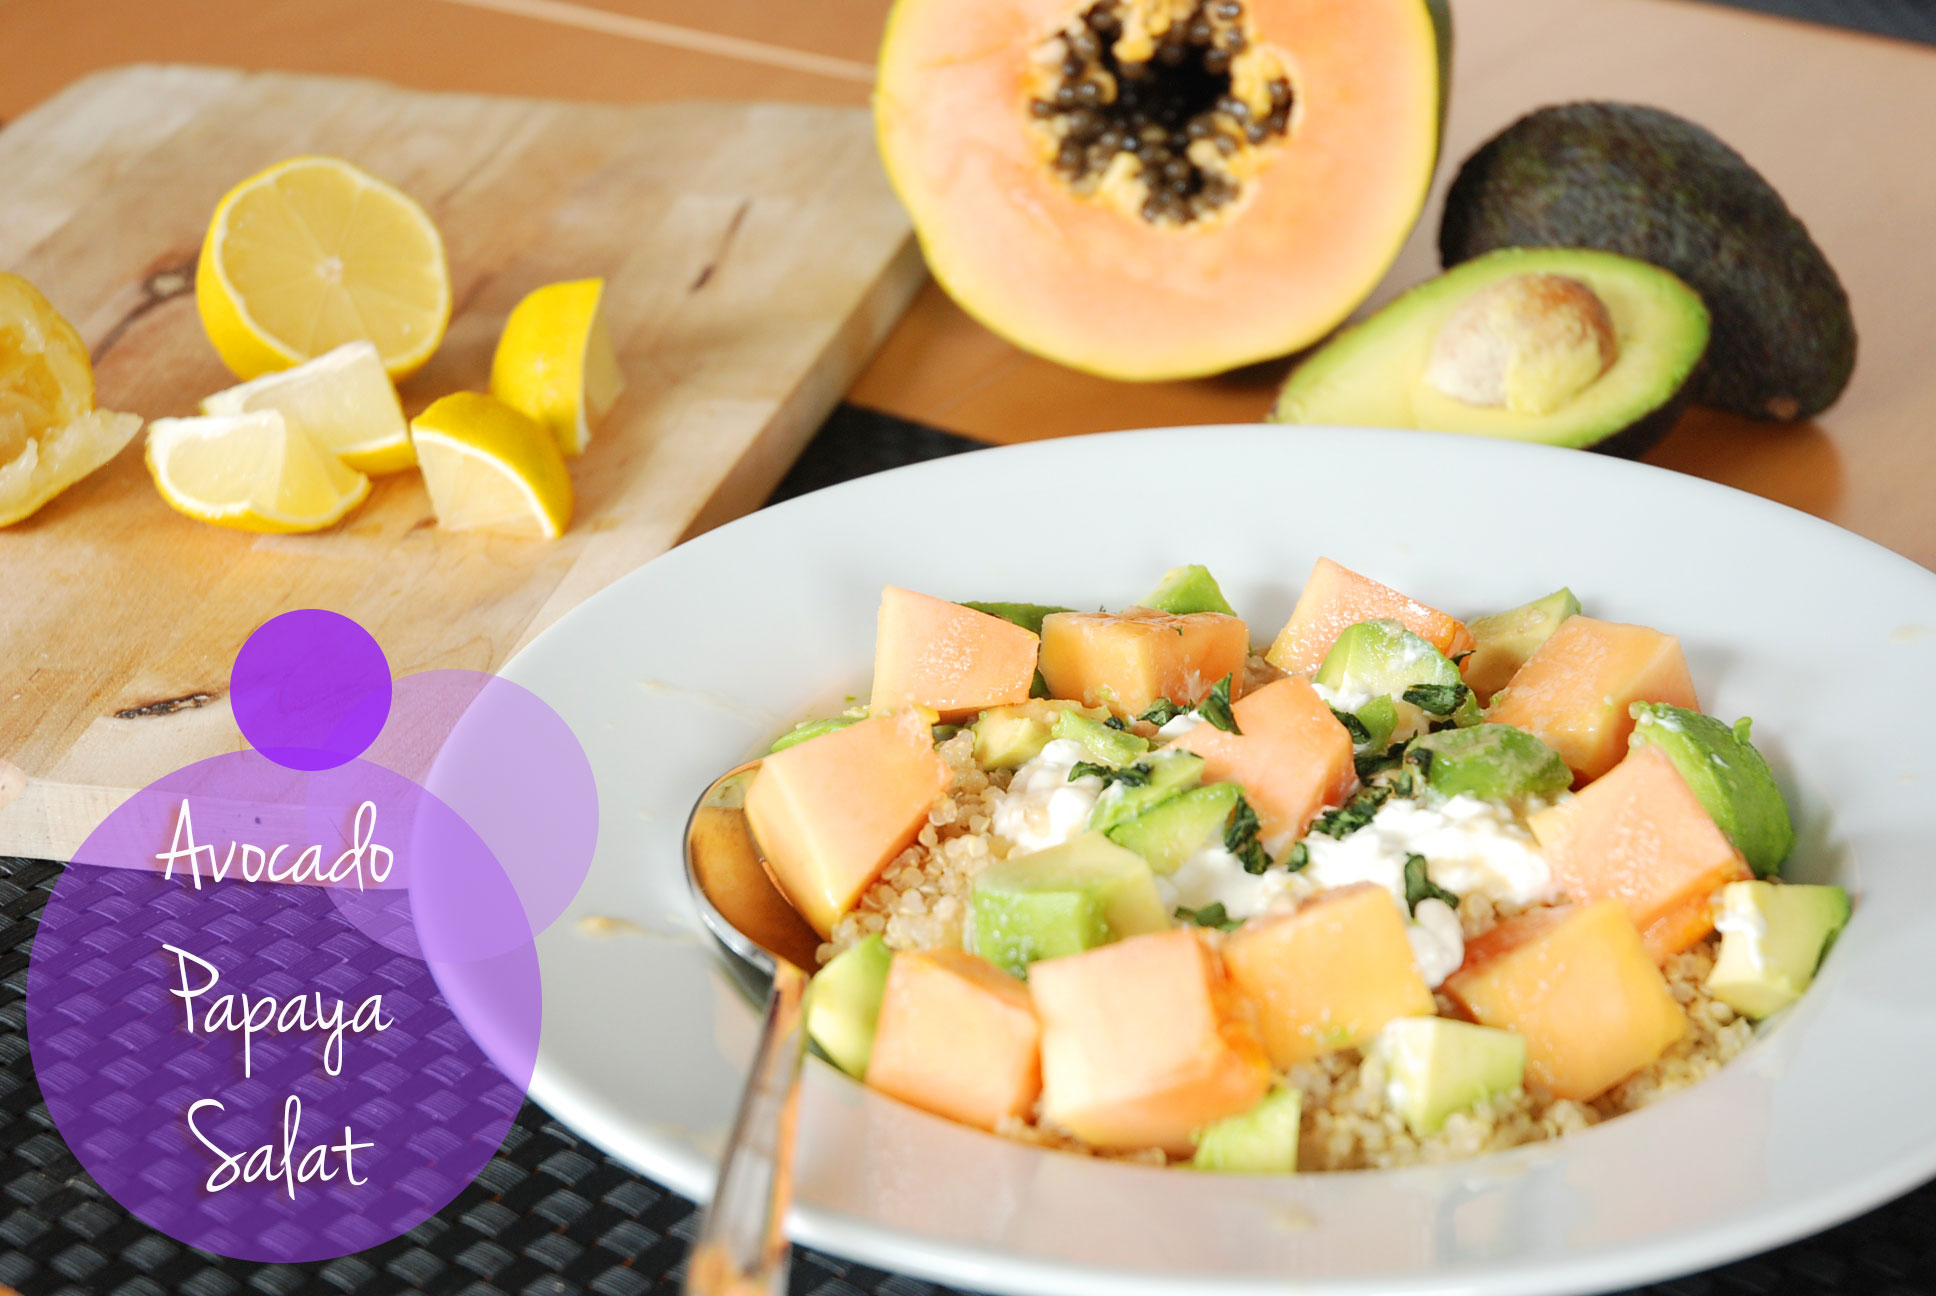 Avocado-Papaya Salat / Avocado-Papaya Salad - FIT & HAPPY